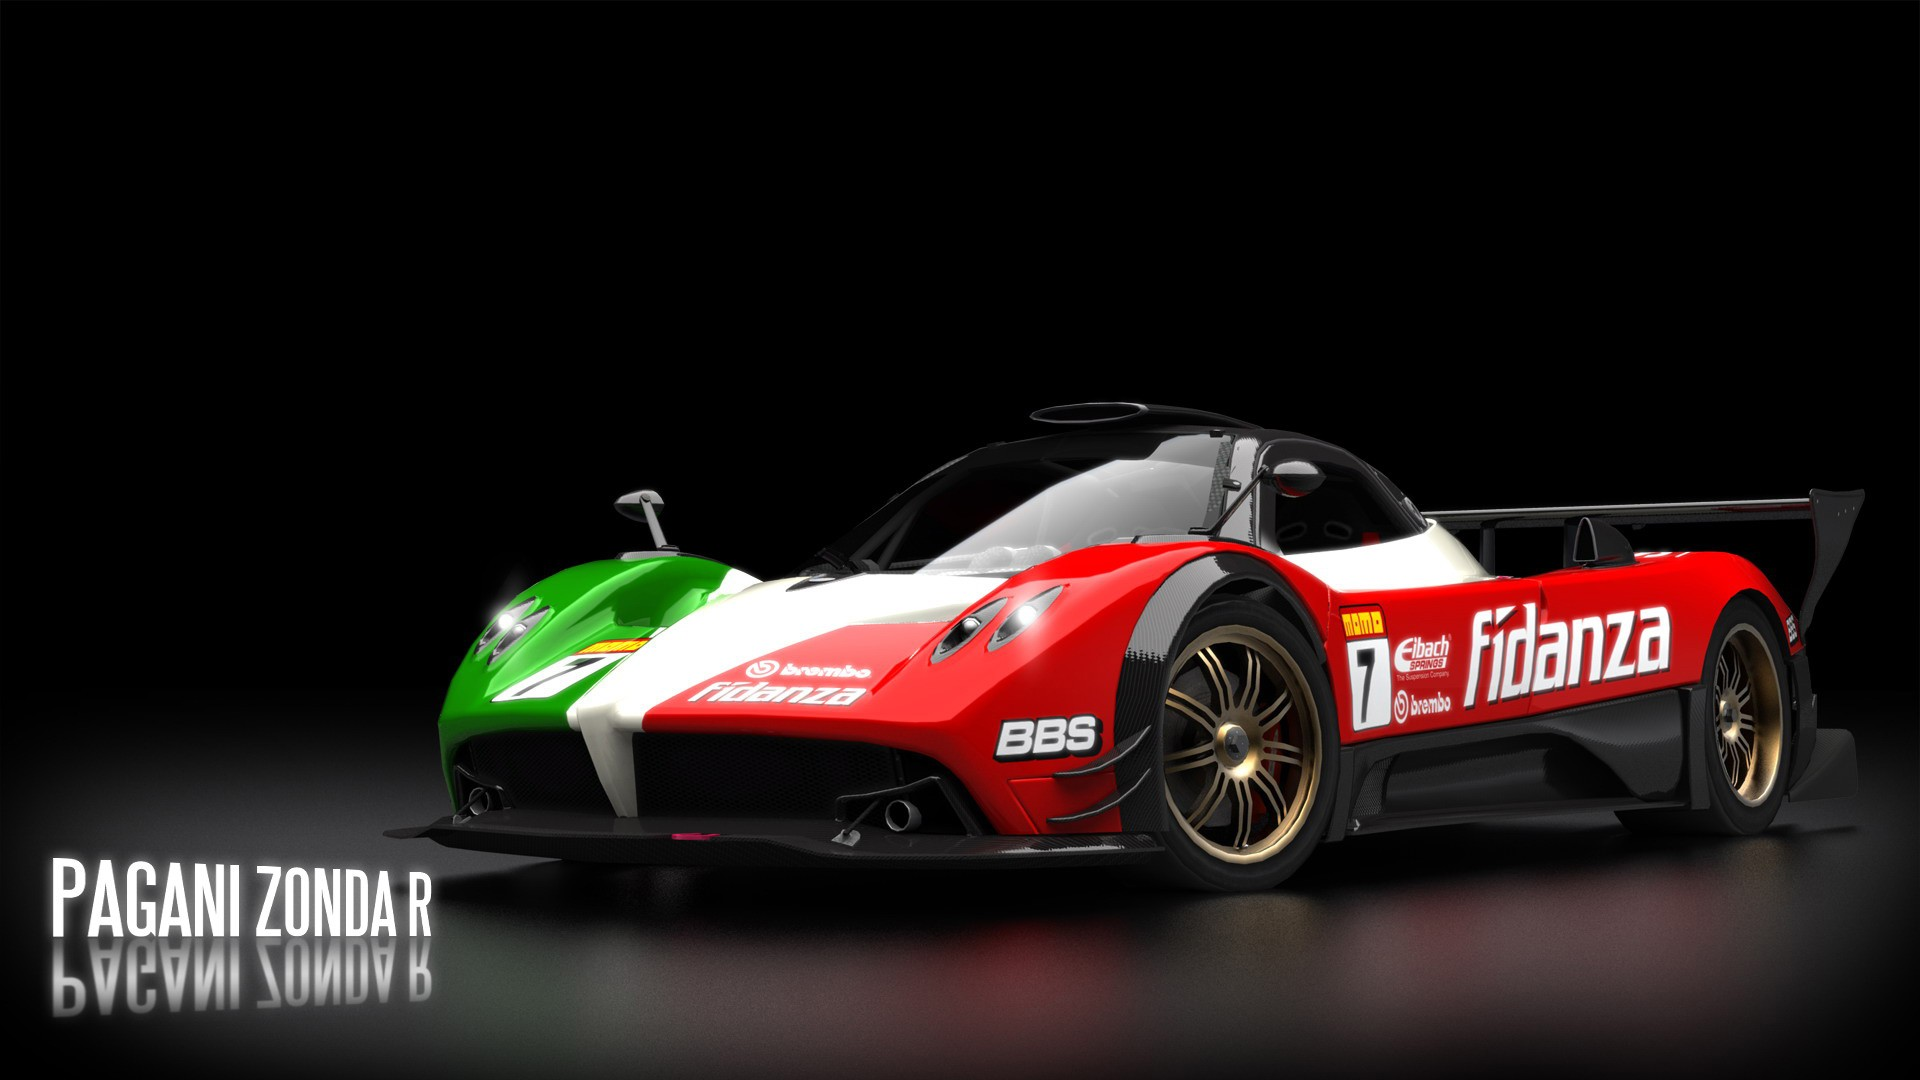 Pagani Zonda Widescreen High Definition Wallpaper Download 1920x1080